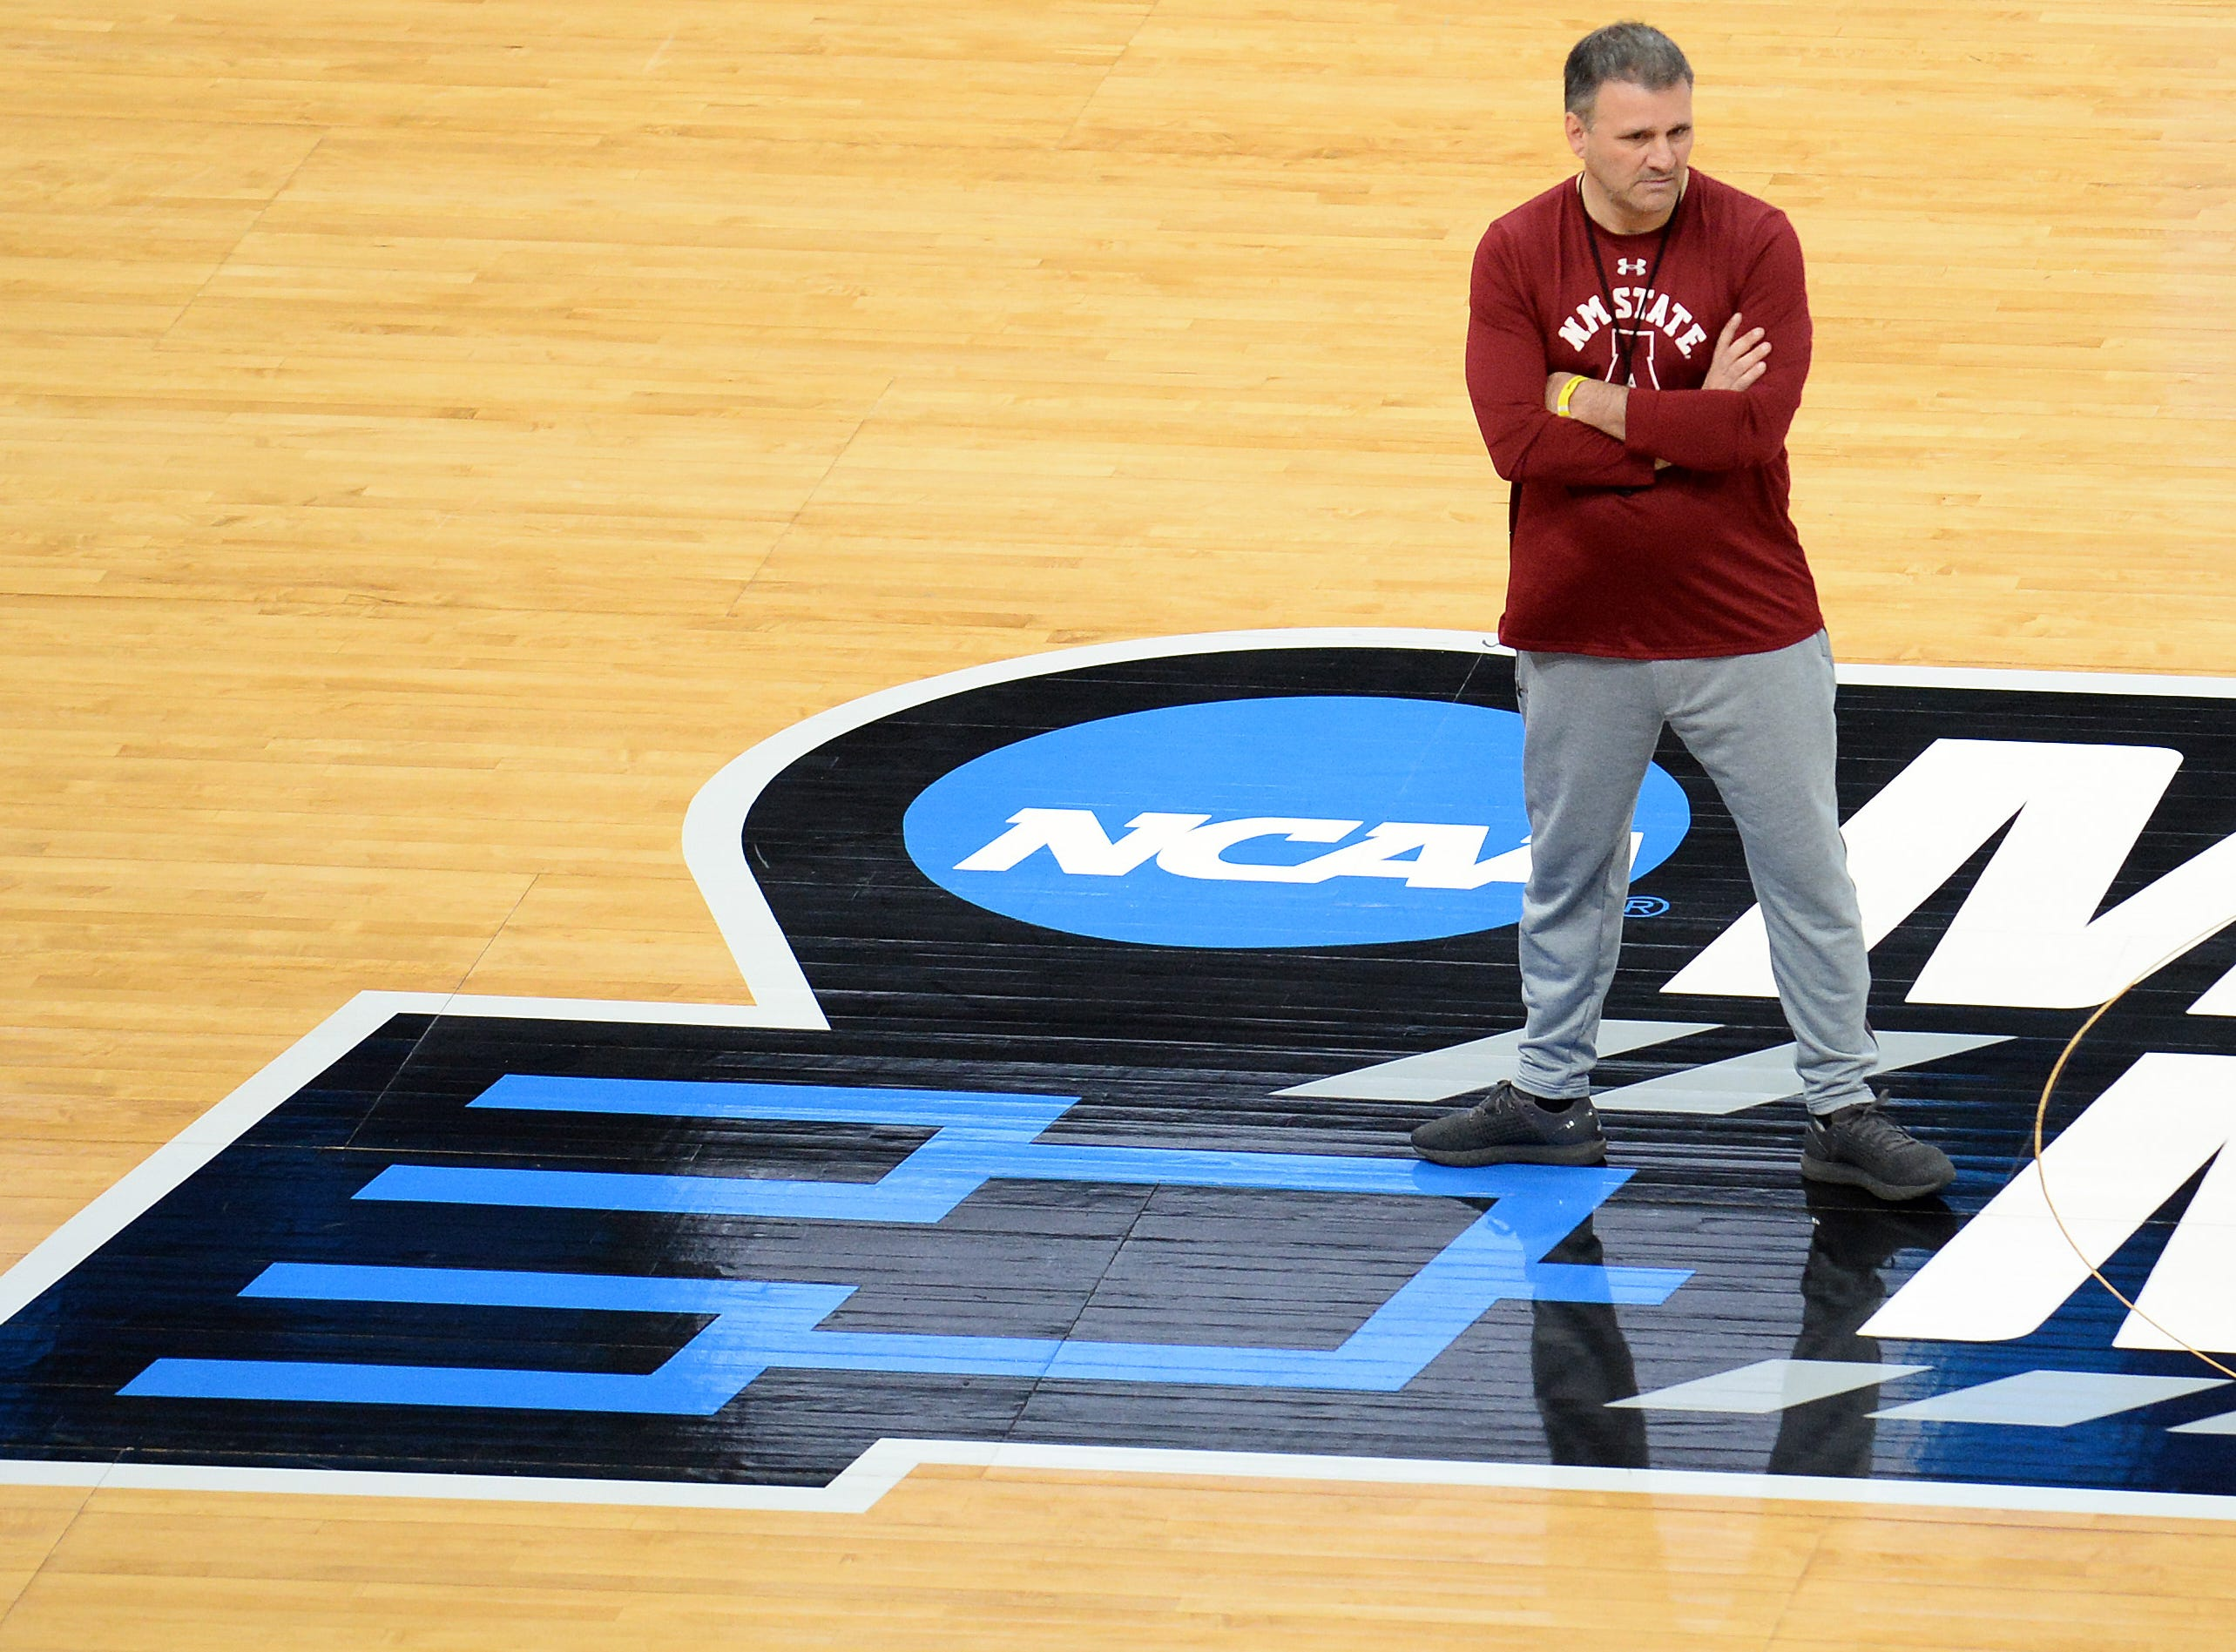 March 20, 2019; Salt Lake City, UT, USA; New Mexico State Aggies head coach Chris Jans watches practice before the first round of the 2019 NCAA Tournament at Vivint Smart Home Arena. Mandatory Credit: Gary A. Vasquez-USA TODAY Sports